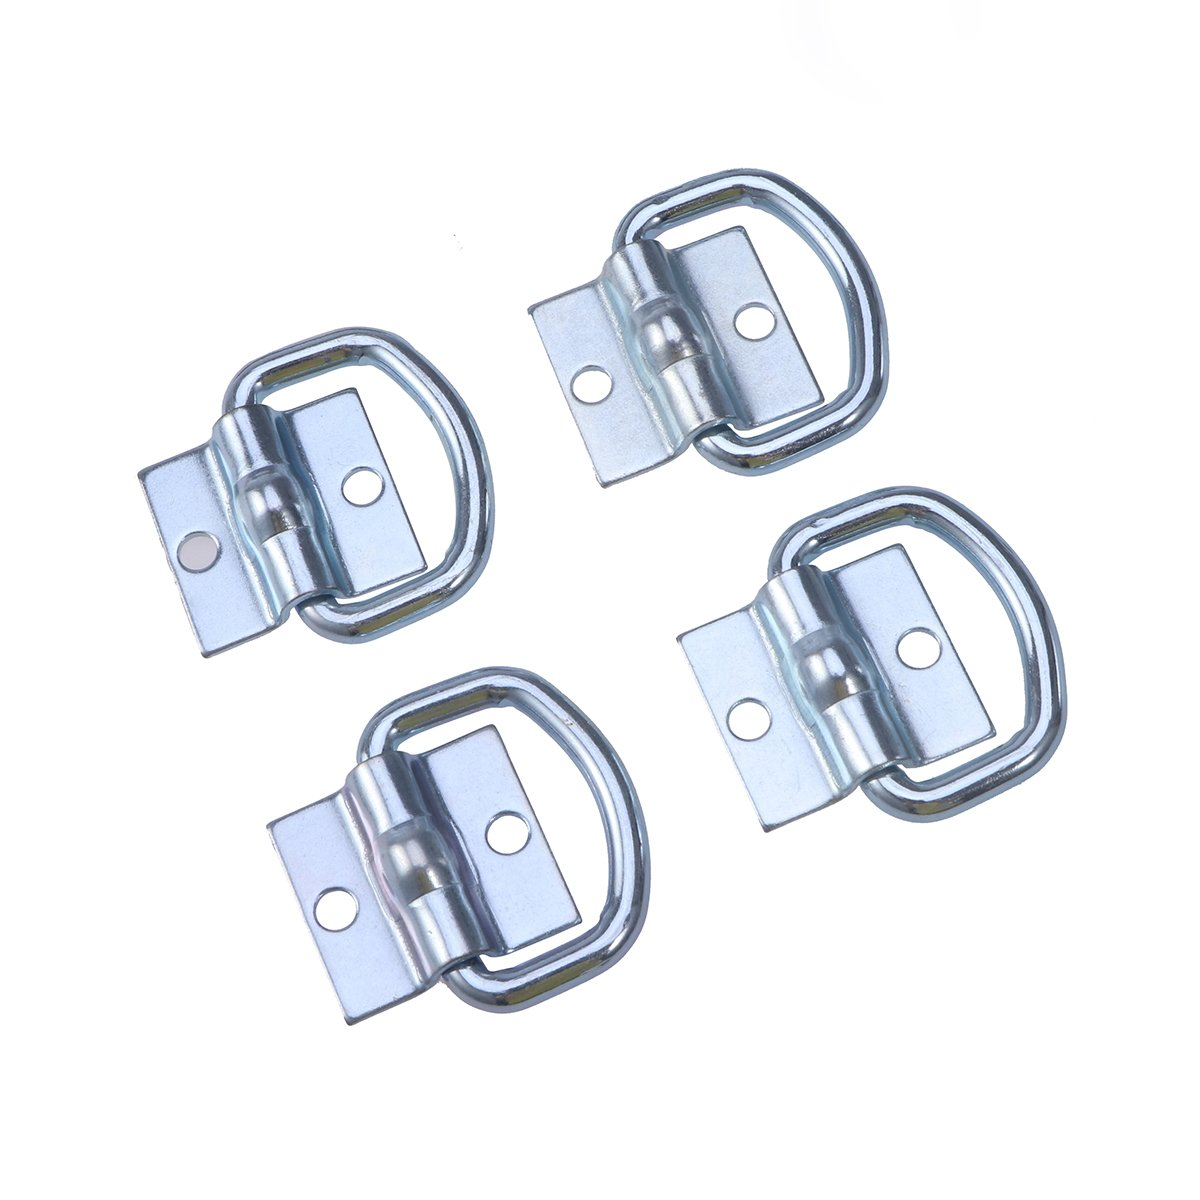 WINOMO 4pcs Tie Down D Ring Load Anchor Trailer Anchor Lashing Ring for Cargo Truck